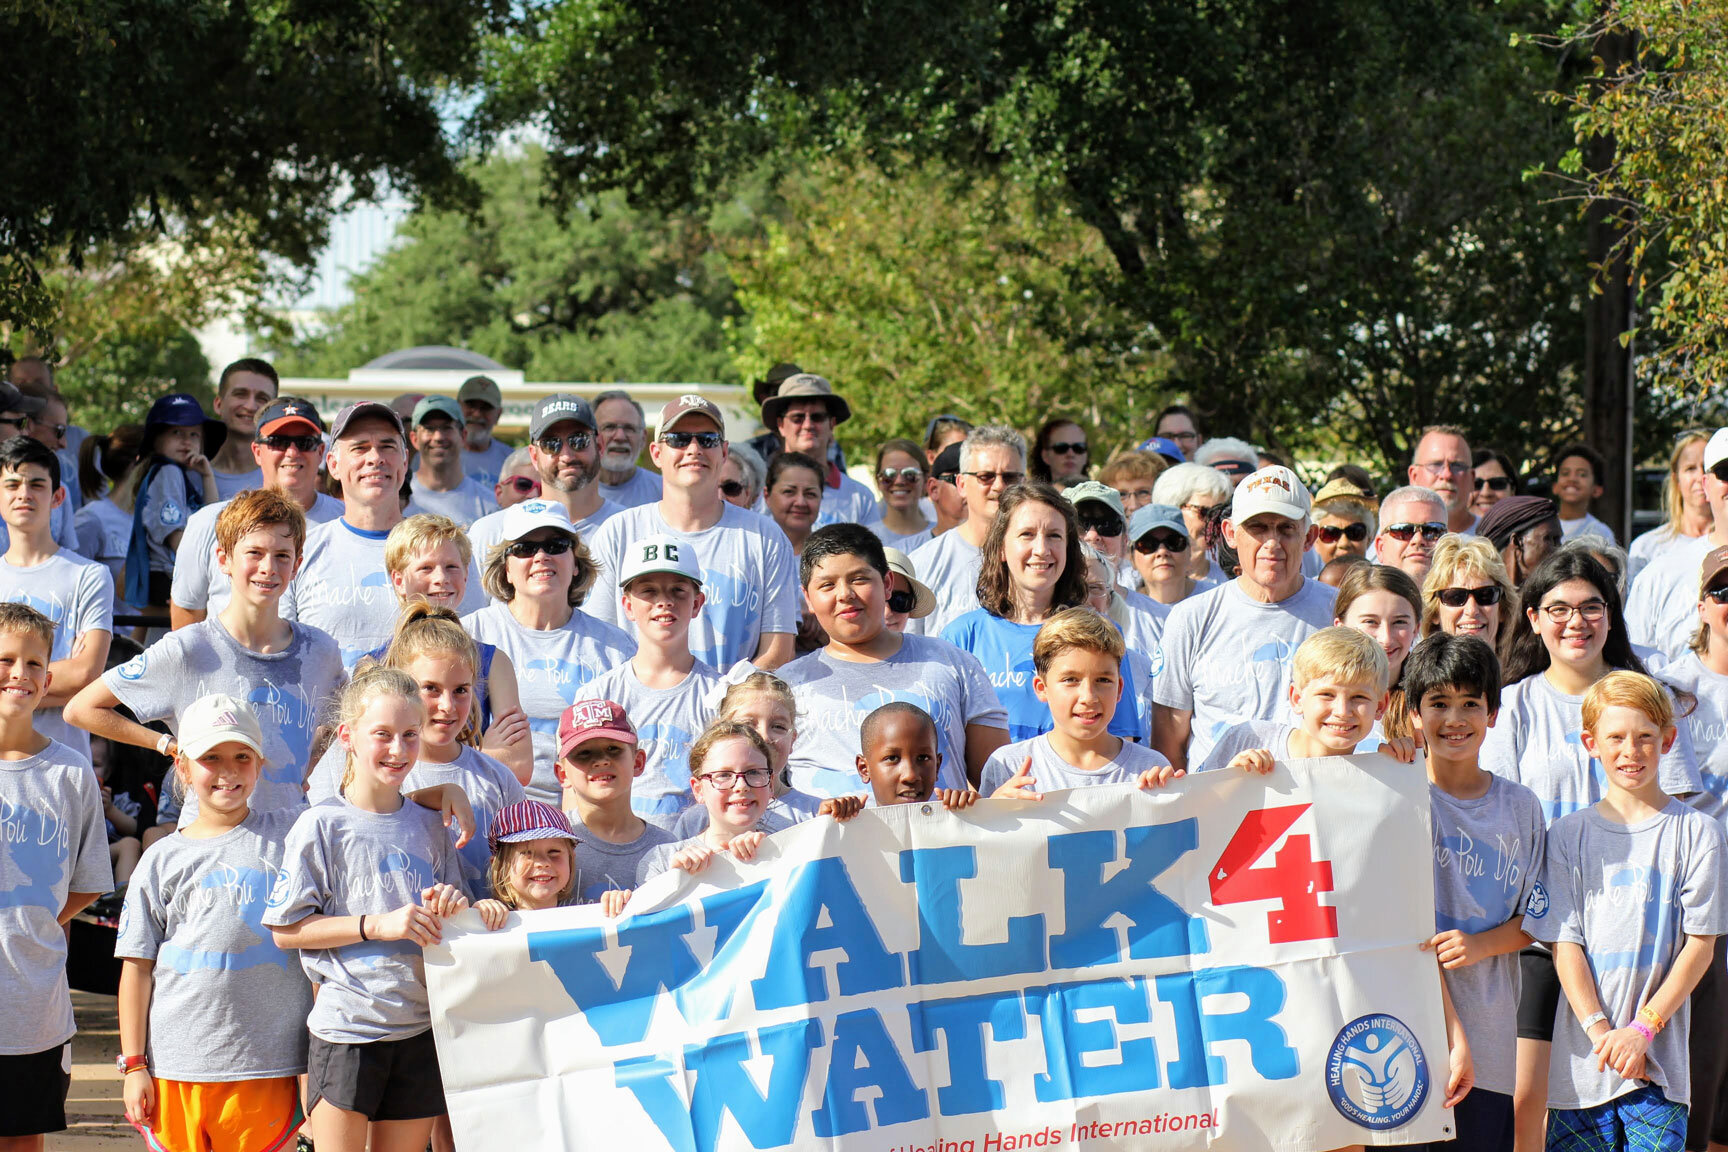 walk-for-water-group.jpg